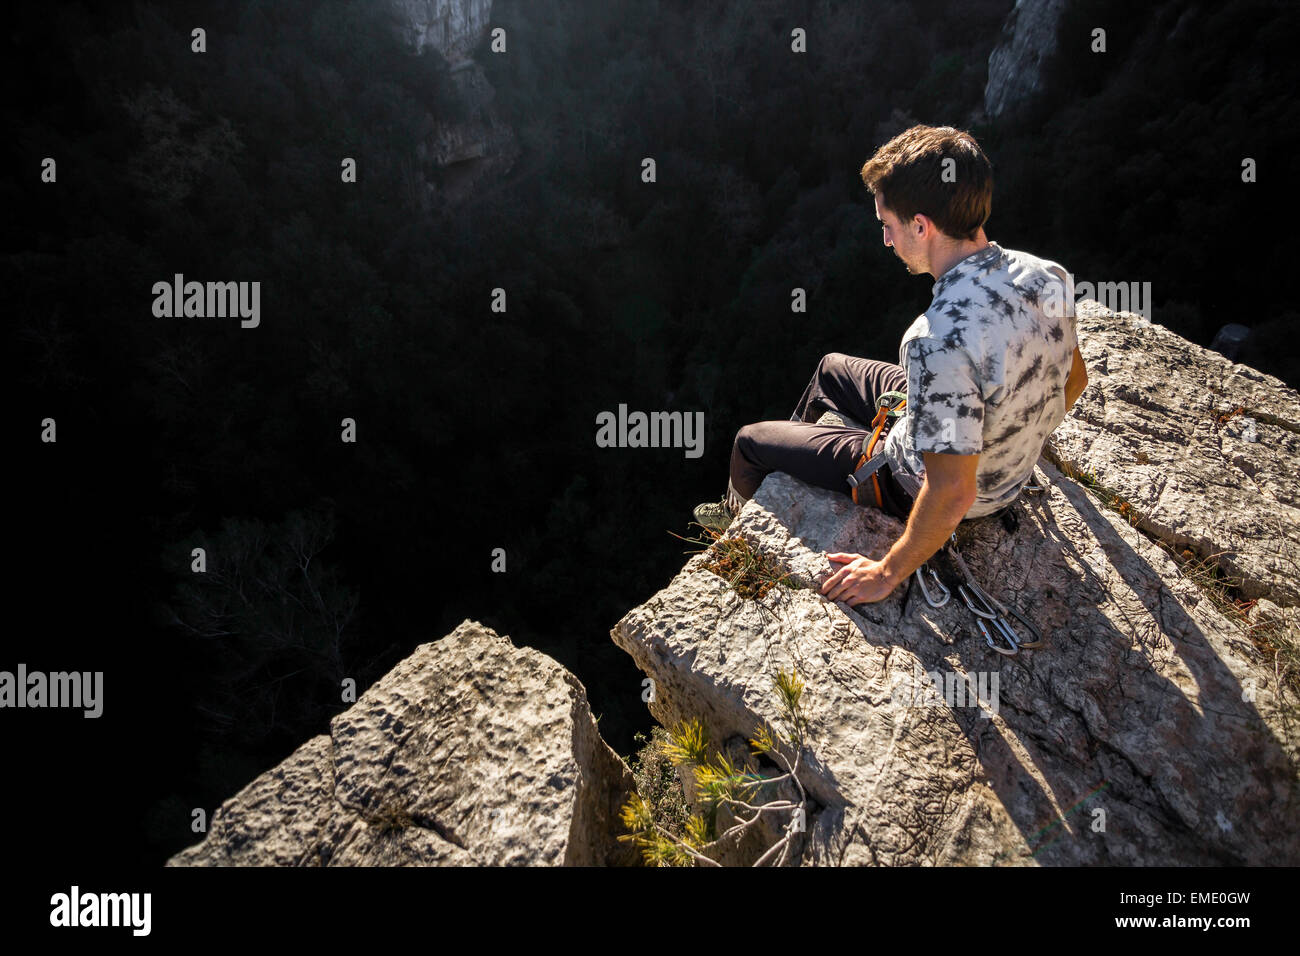 Man on the edge of a cliff - Stock Image